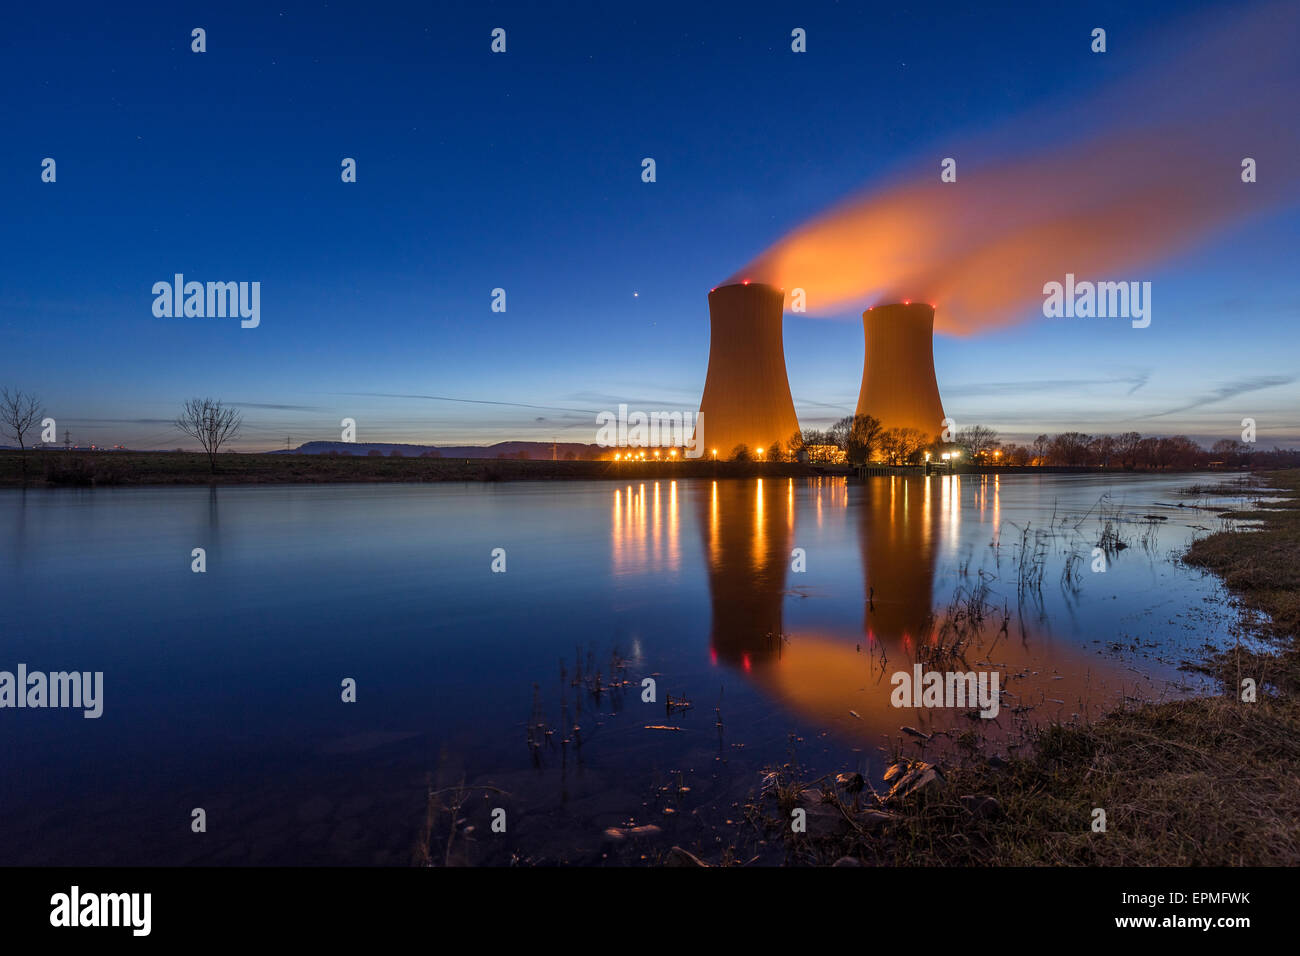 Germany, Lower Saxony, Grohnde, Grohnde Nuclear Power Plant - Stock Image